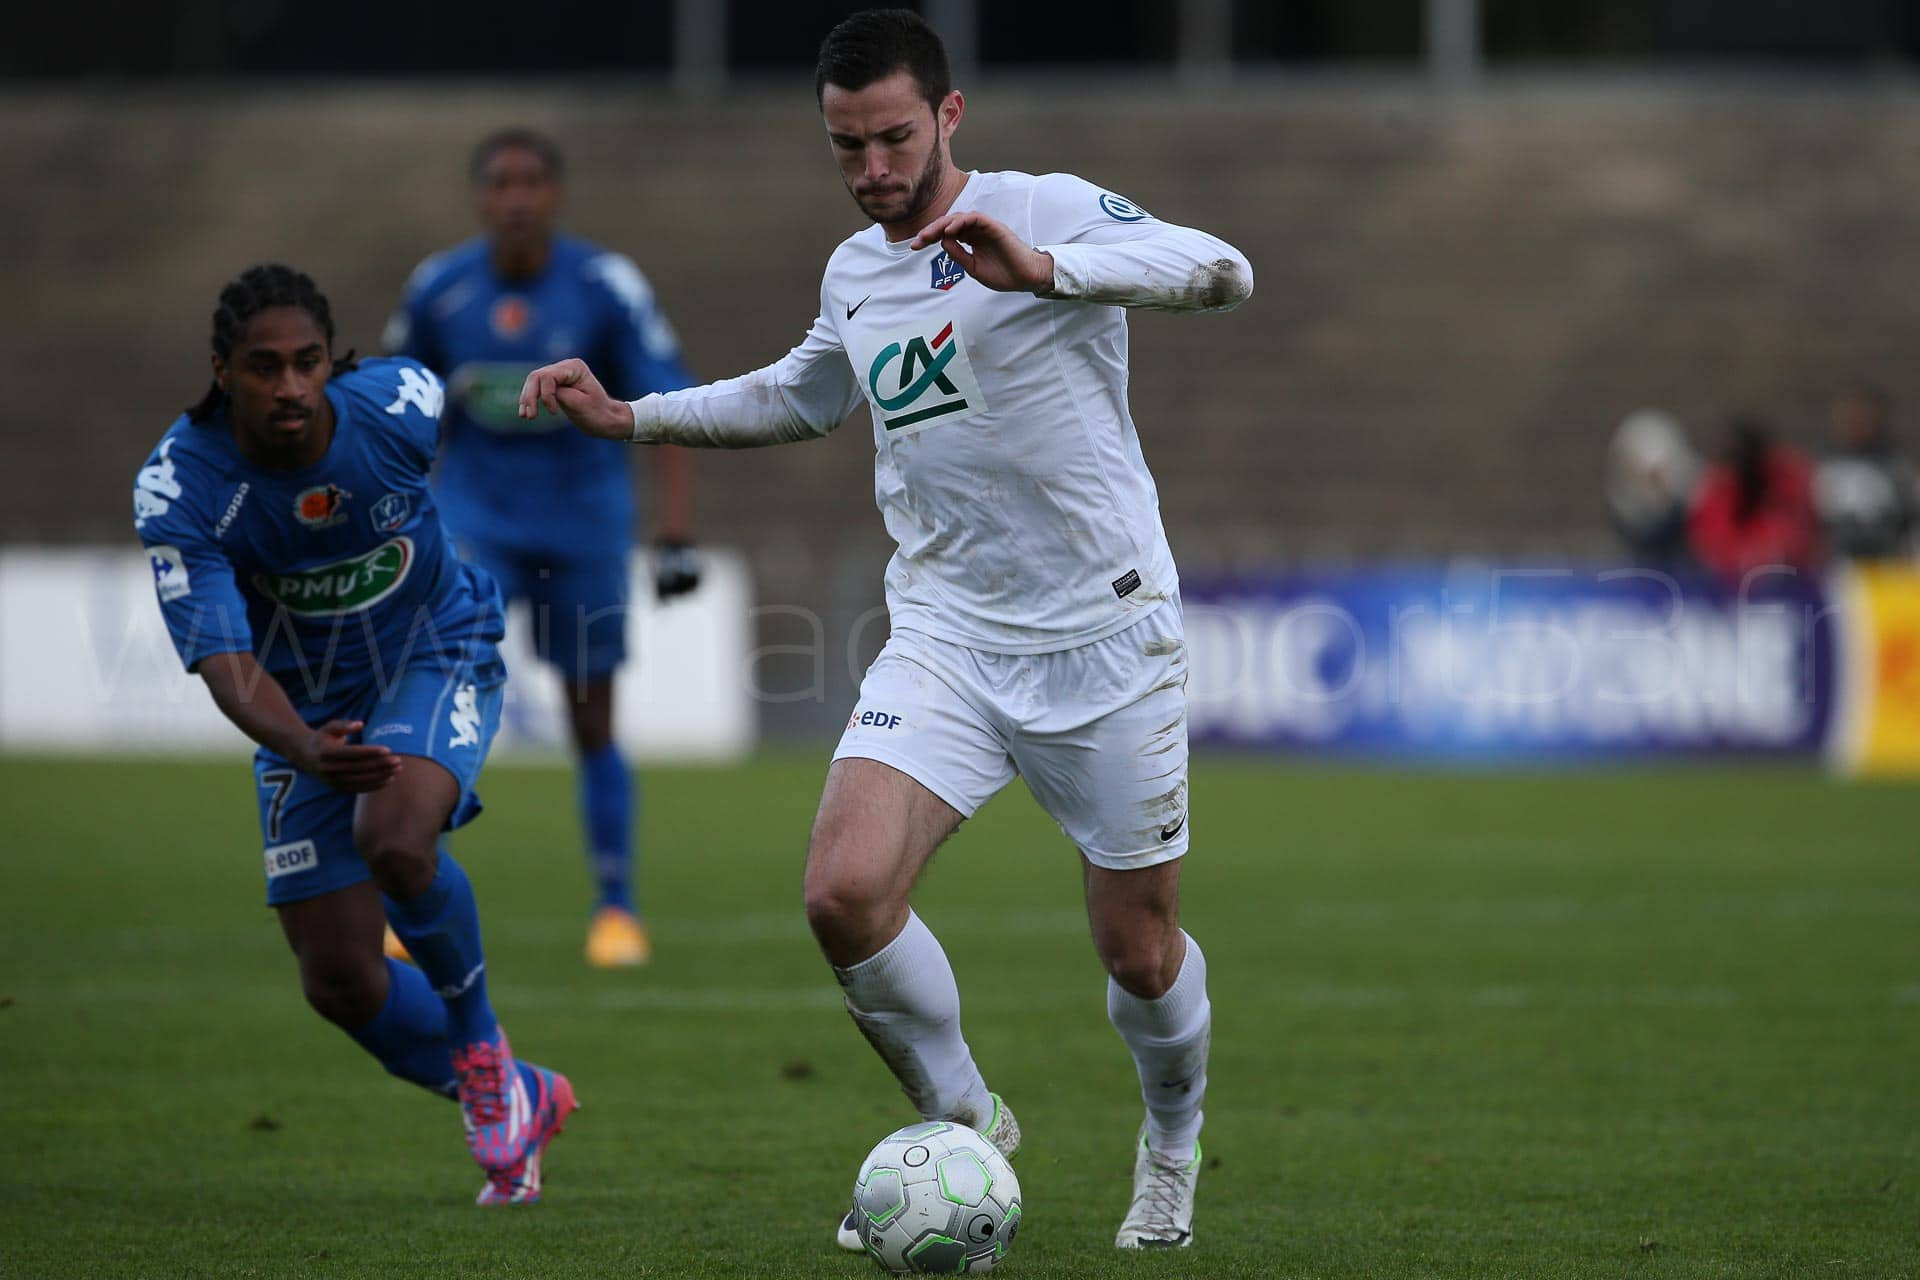 NG-CoupedeFrance-1415-T07-Laval-SaintBerthevin_33